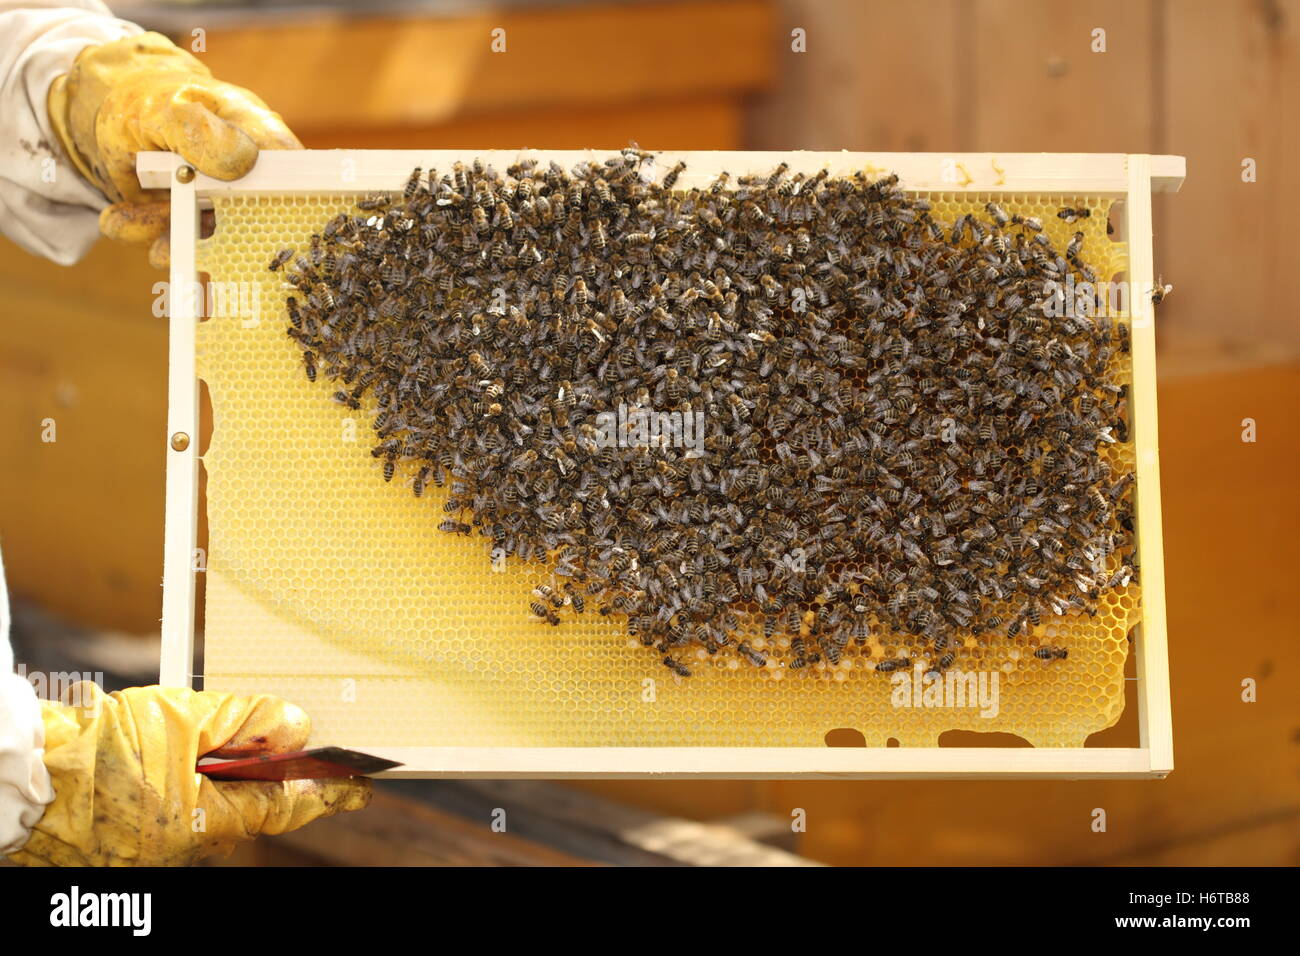 bees beehive poor man beeswax honey insect bee check food aliment tool health detail stock provision eco sweetly - Stock Image